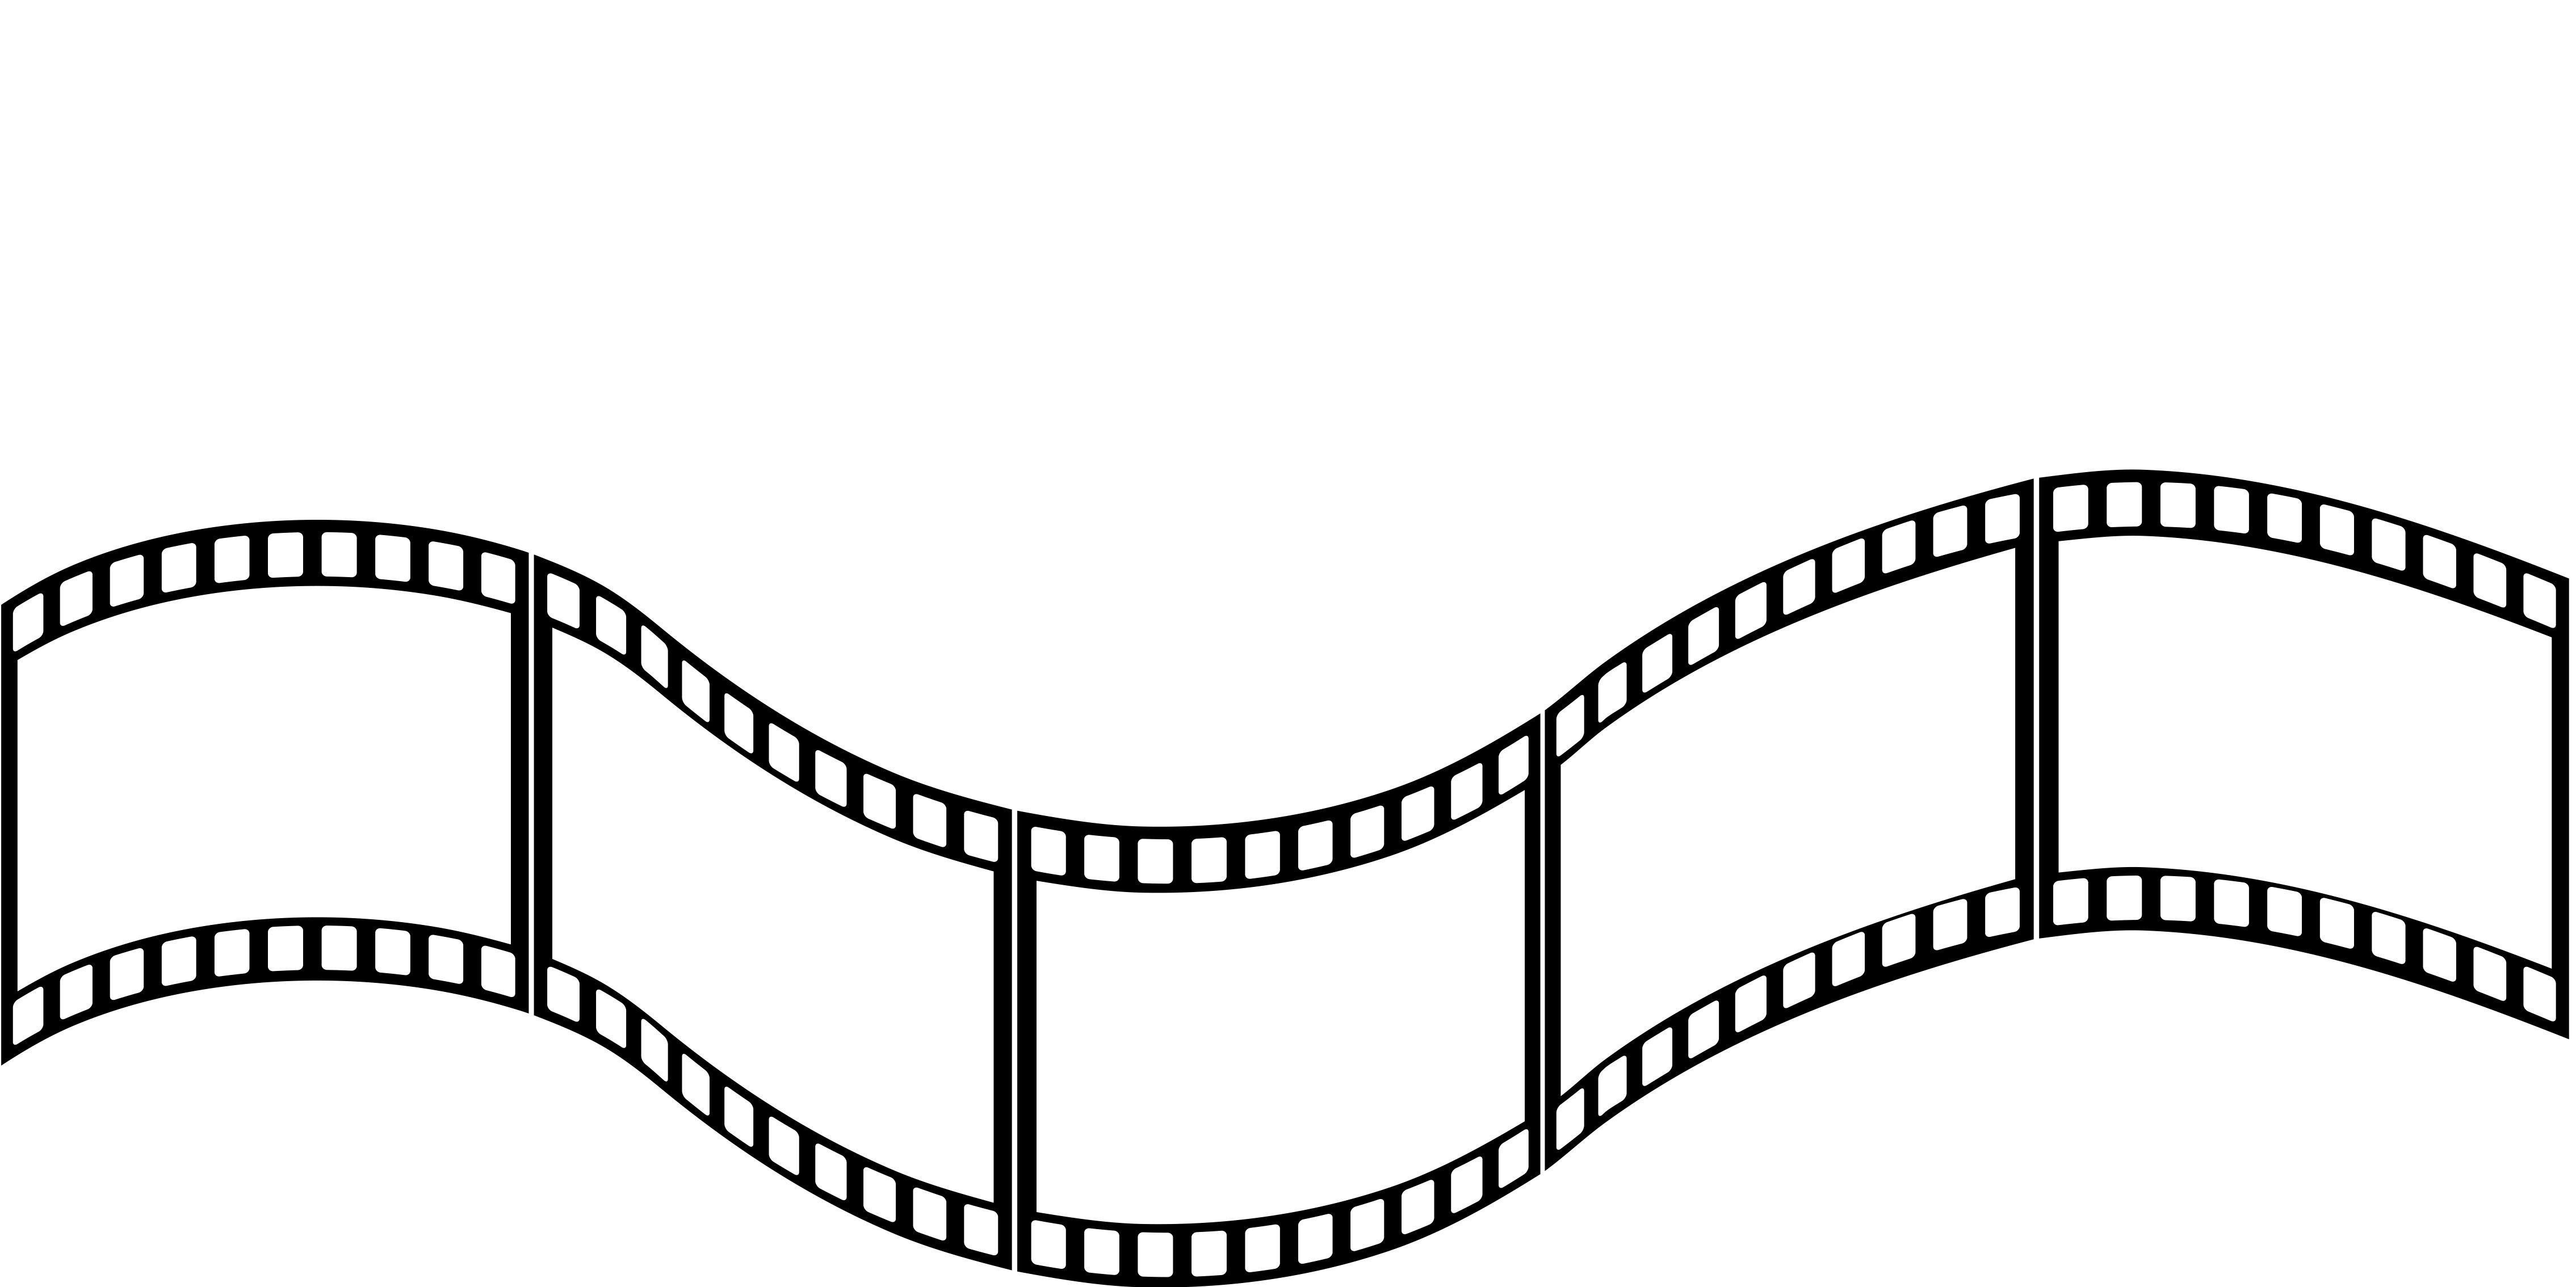 Movie reel clipart images graphic transparent library Pin by Melanie Van Deventer on Art projects | Movie reels ... graphic transparent library